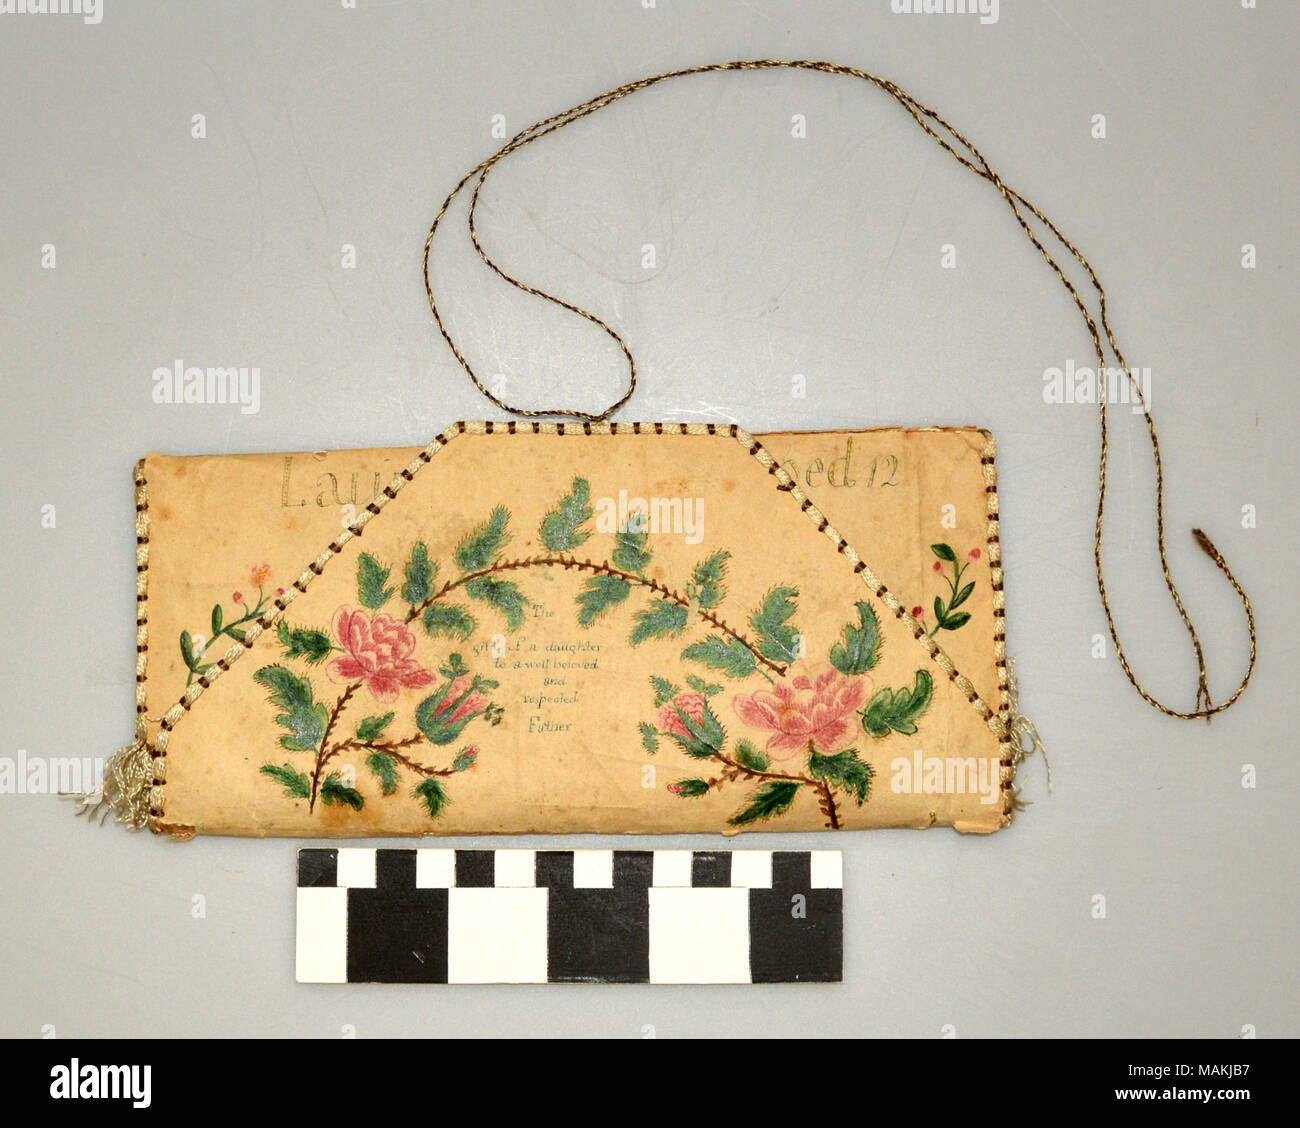 Paper wallet with fabric interior inscribed ' Laura A. Phelps aged 12 At Mrs Setons School, The gift of a daughter to a well beloved and respected Father. Title: Wallet Made by Laura A. Phelps for her Father  . 1815. Phelps, Laura A., 1803- - Stock Image